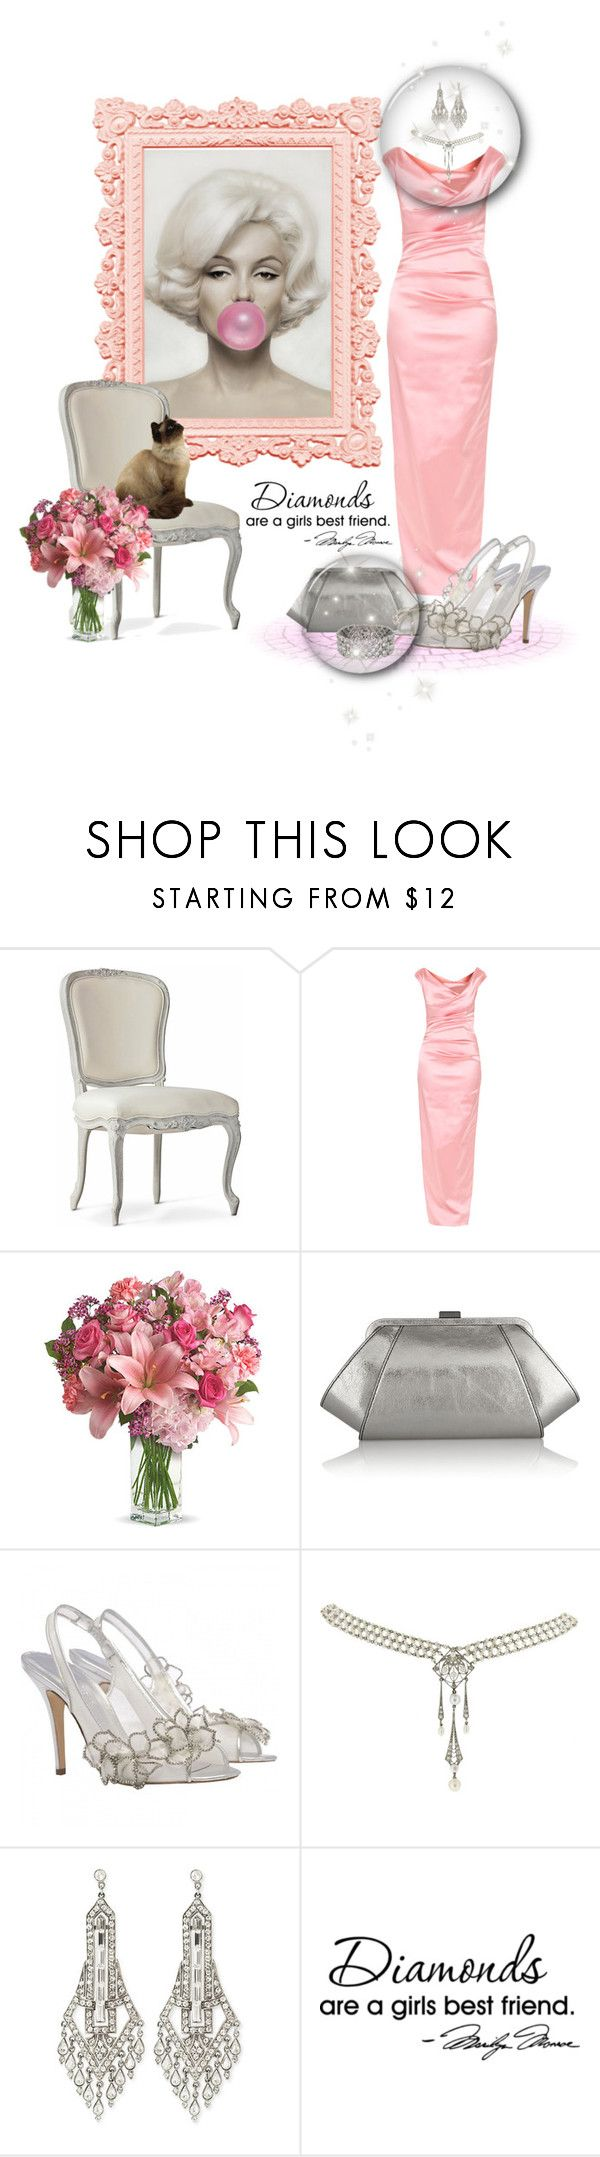 """""""Miss Monroe"""" by leanne-mcclean ❤ liked on Polyvore featuring Talbot Runhof, ZAC Zac Posen, Ben-Amun, Bulgari, WALL, silverandpink and SilverMeetsColor"""